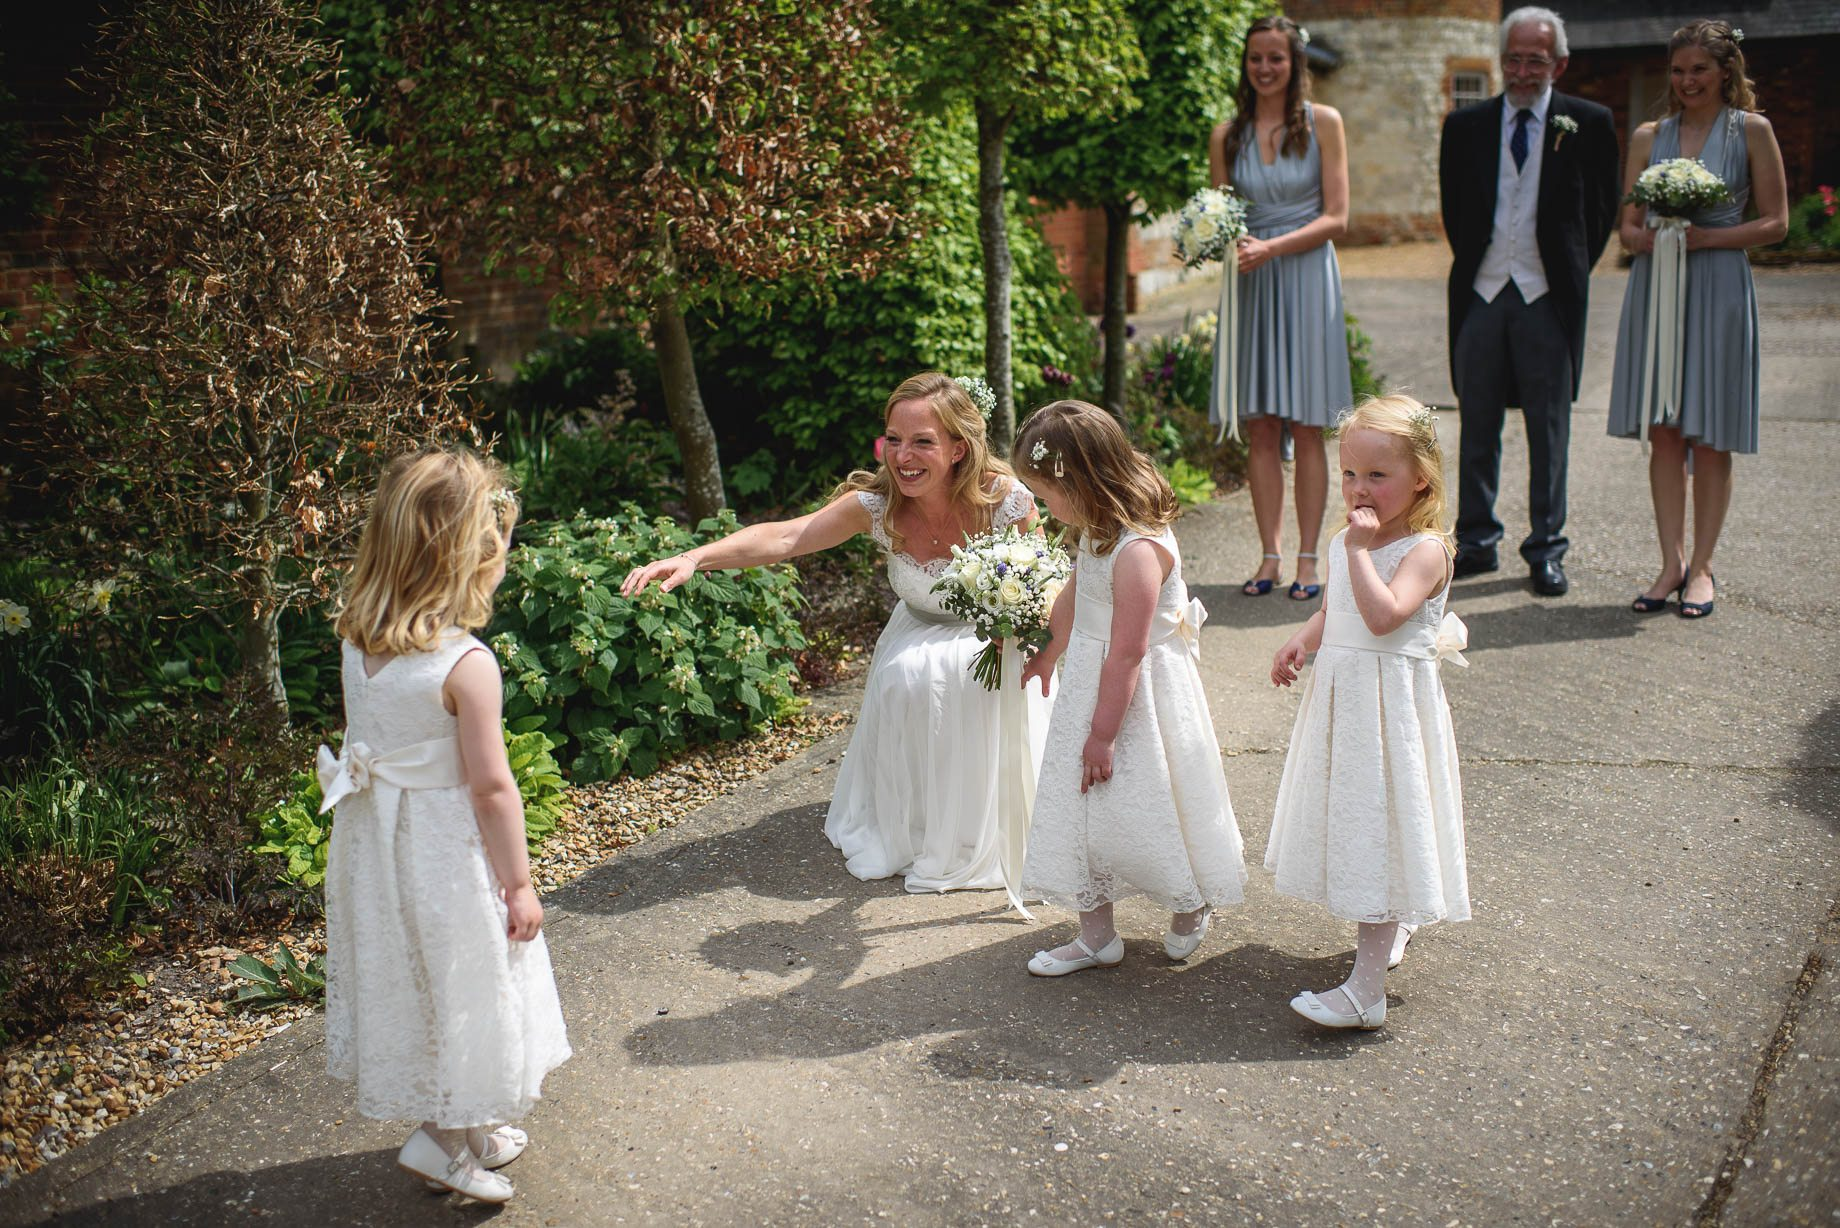 Bury Court Barn wedding photography by Guy Collier - Heather and Pat (32 of 170)